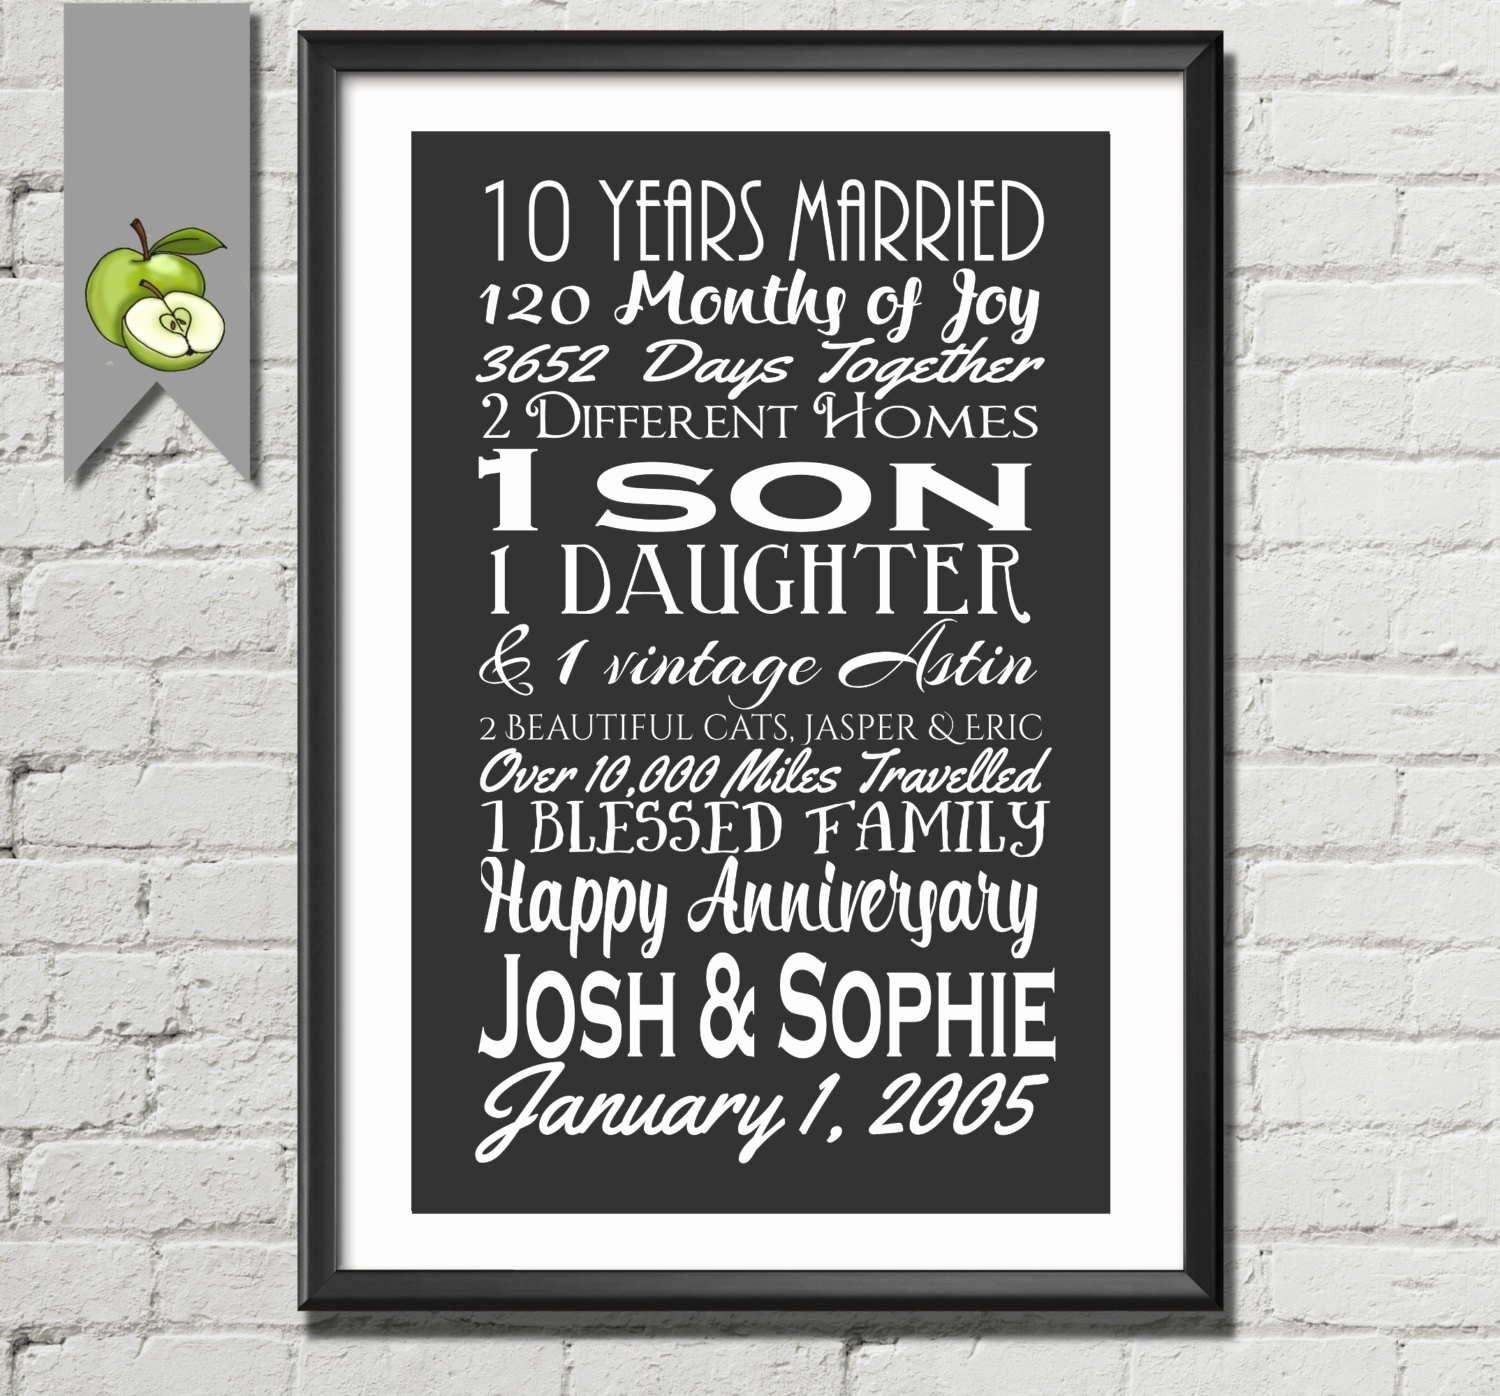 10 Elegant 25Th Anniversary Gift Ideas For Wife silver wedding anniversary gift ideas luxury 1 corinthians 13 love 2020